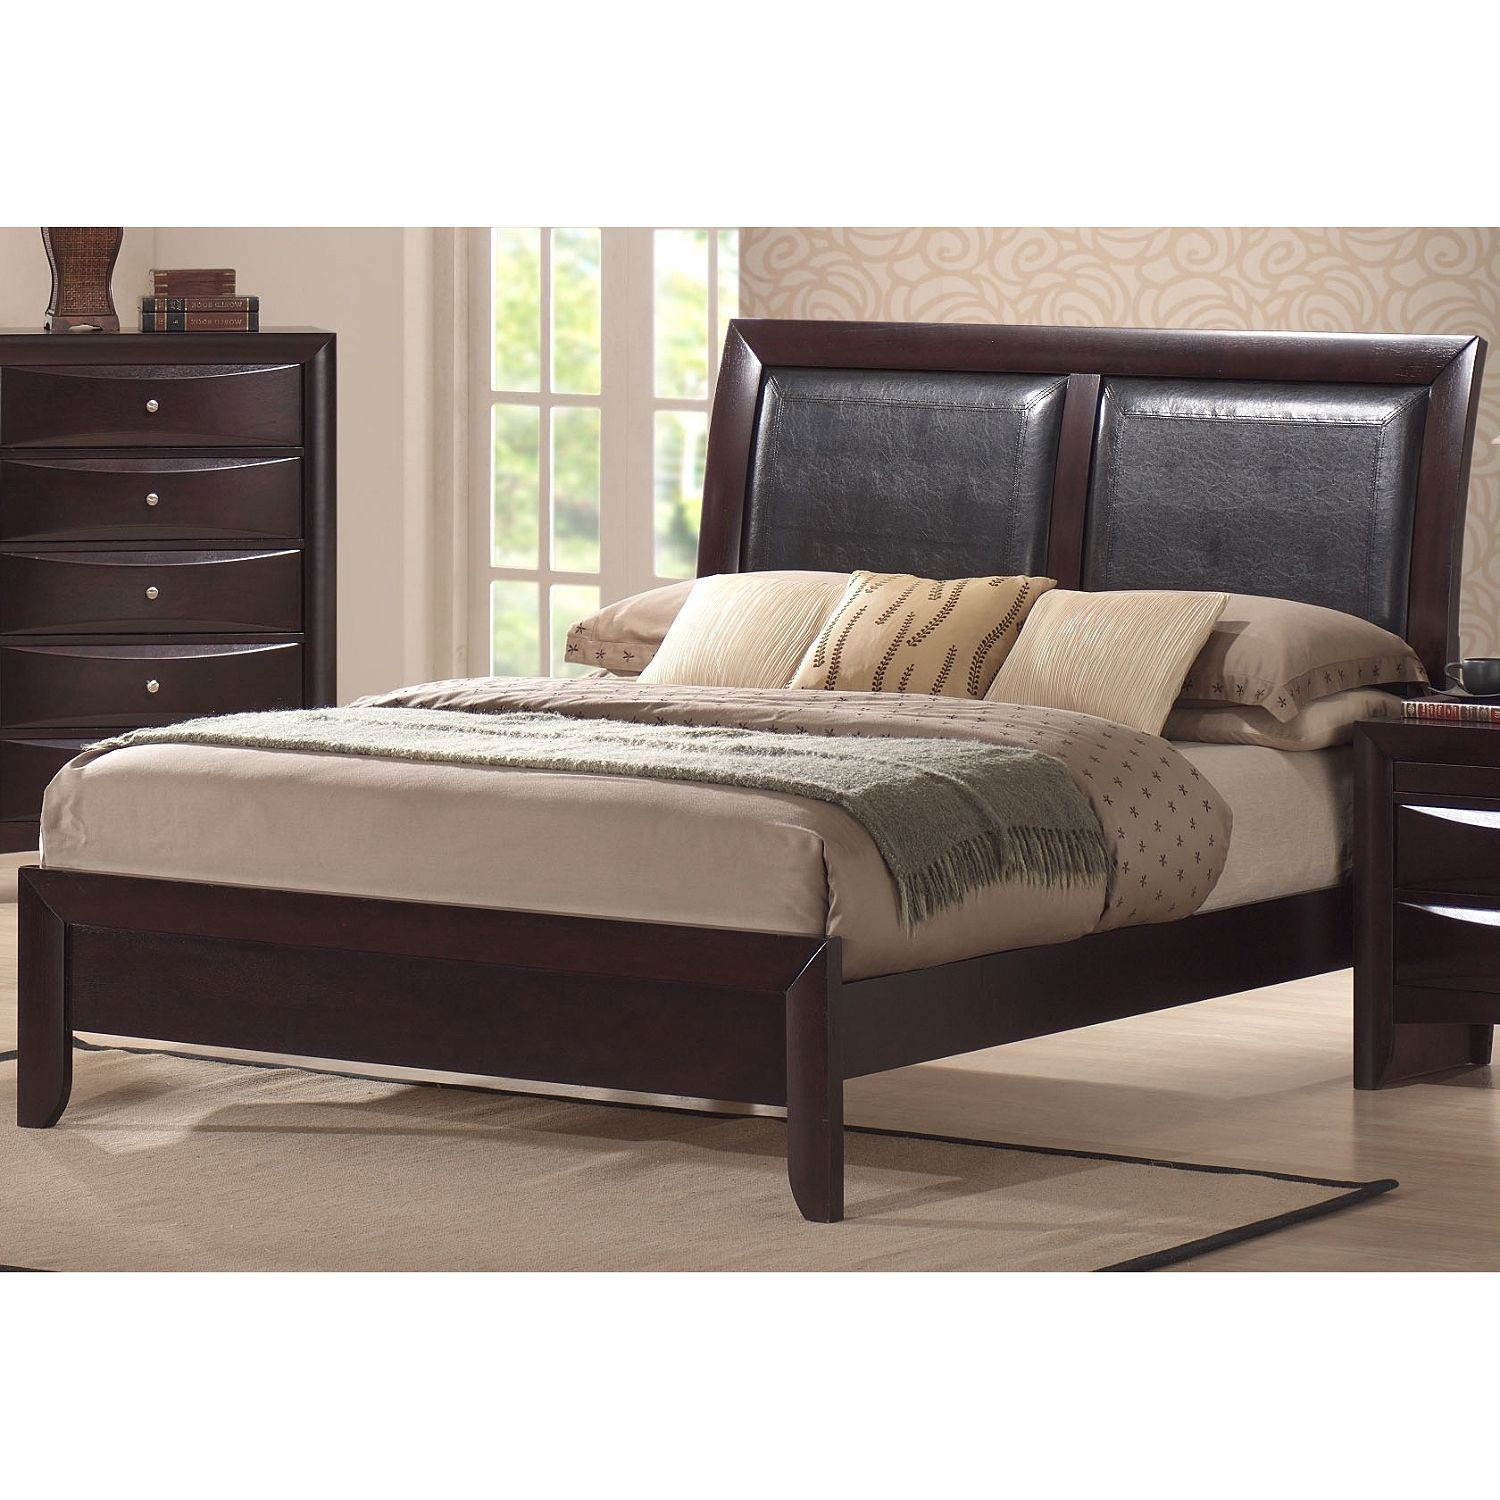 Madison Full Bed Sam S Club With Images Bedroom Sets Picket